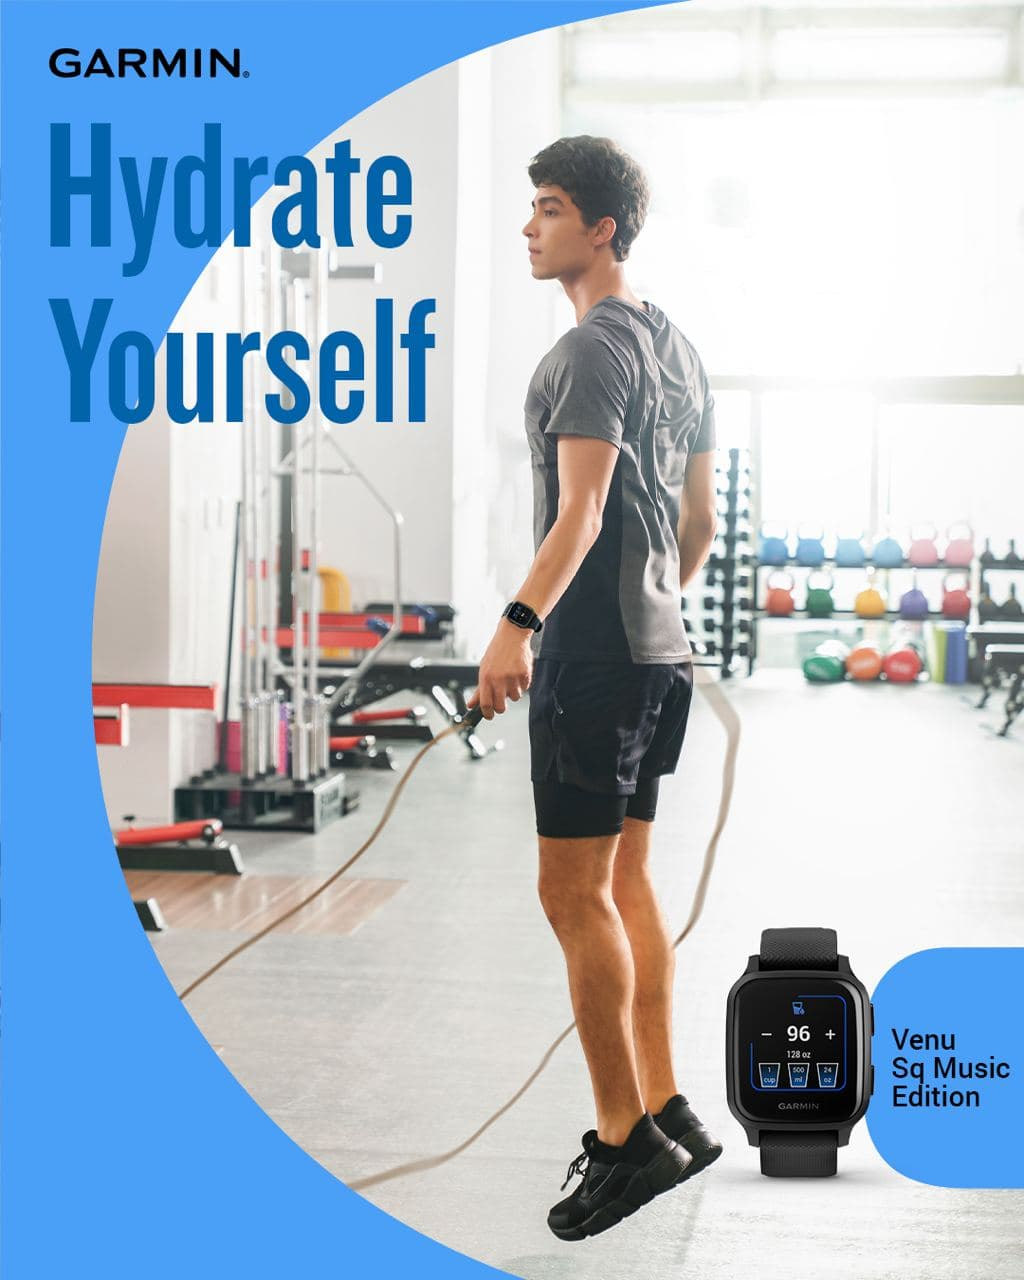 When you're working out, your body sweats and it causes you to lose body fluid.  Hydration Tracking logs your daily fluid intake as a reminder to stay hydrated. When you exercise, you need more fluid to replace the sweat lost. Aside from playing your favourite songs, the Venu Sq Music Edition also allows you to have an auto goal for hydration that adjusts based on how much sweat you lose during activities.  Build a healthy pattern by getting hydrated!...